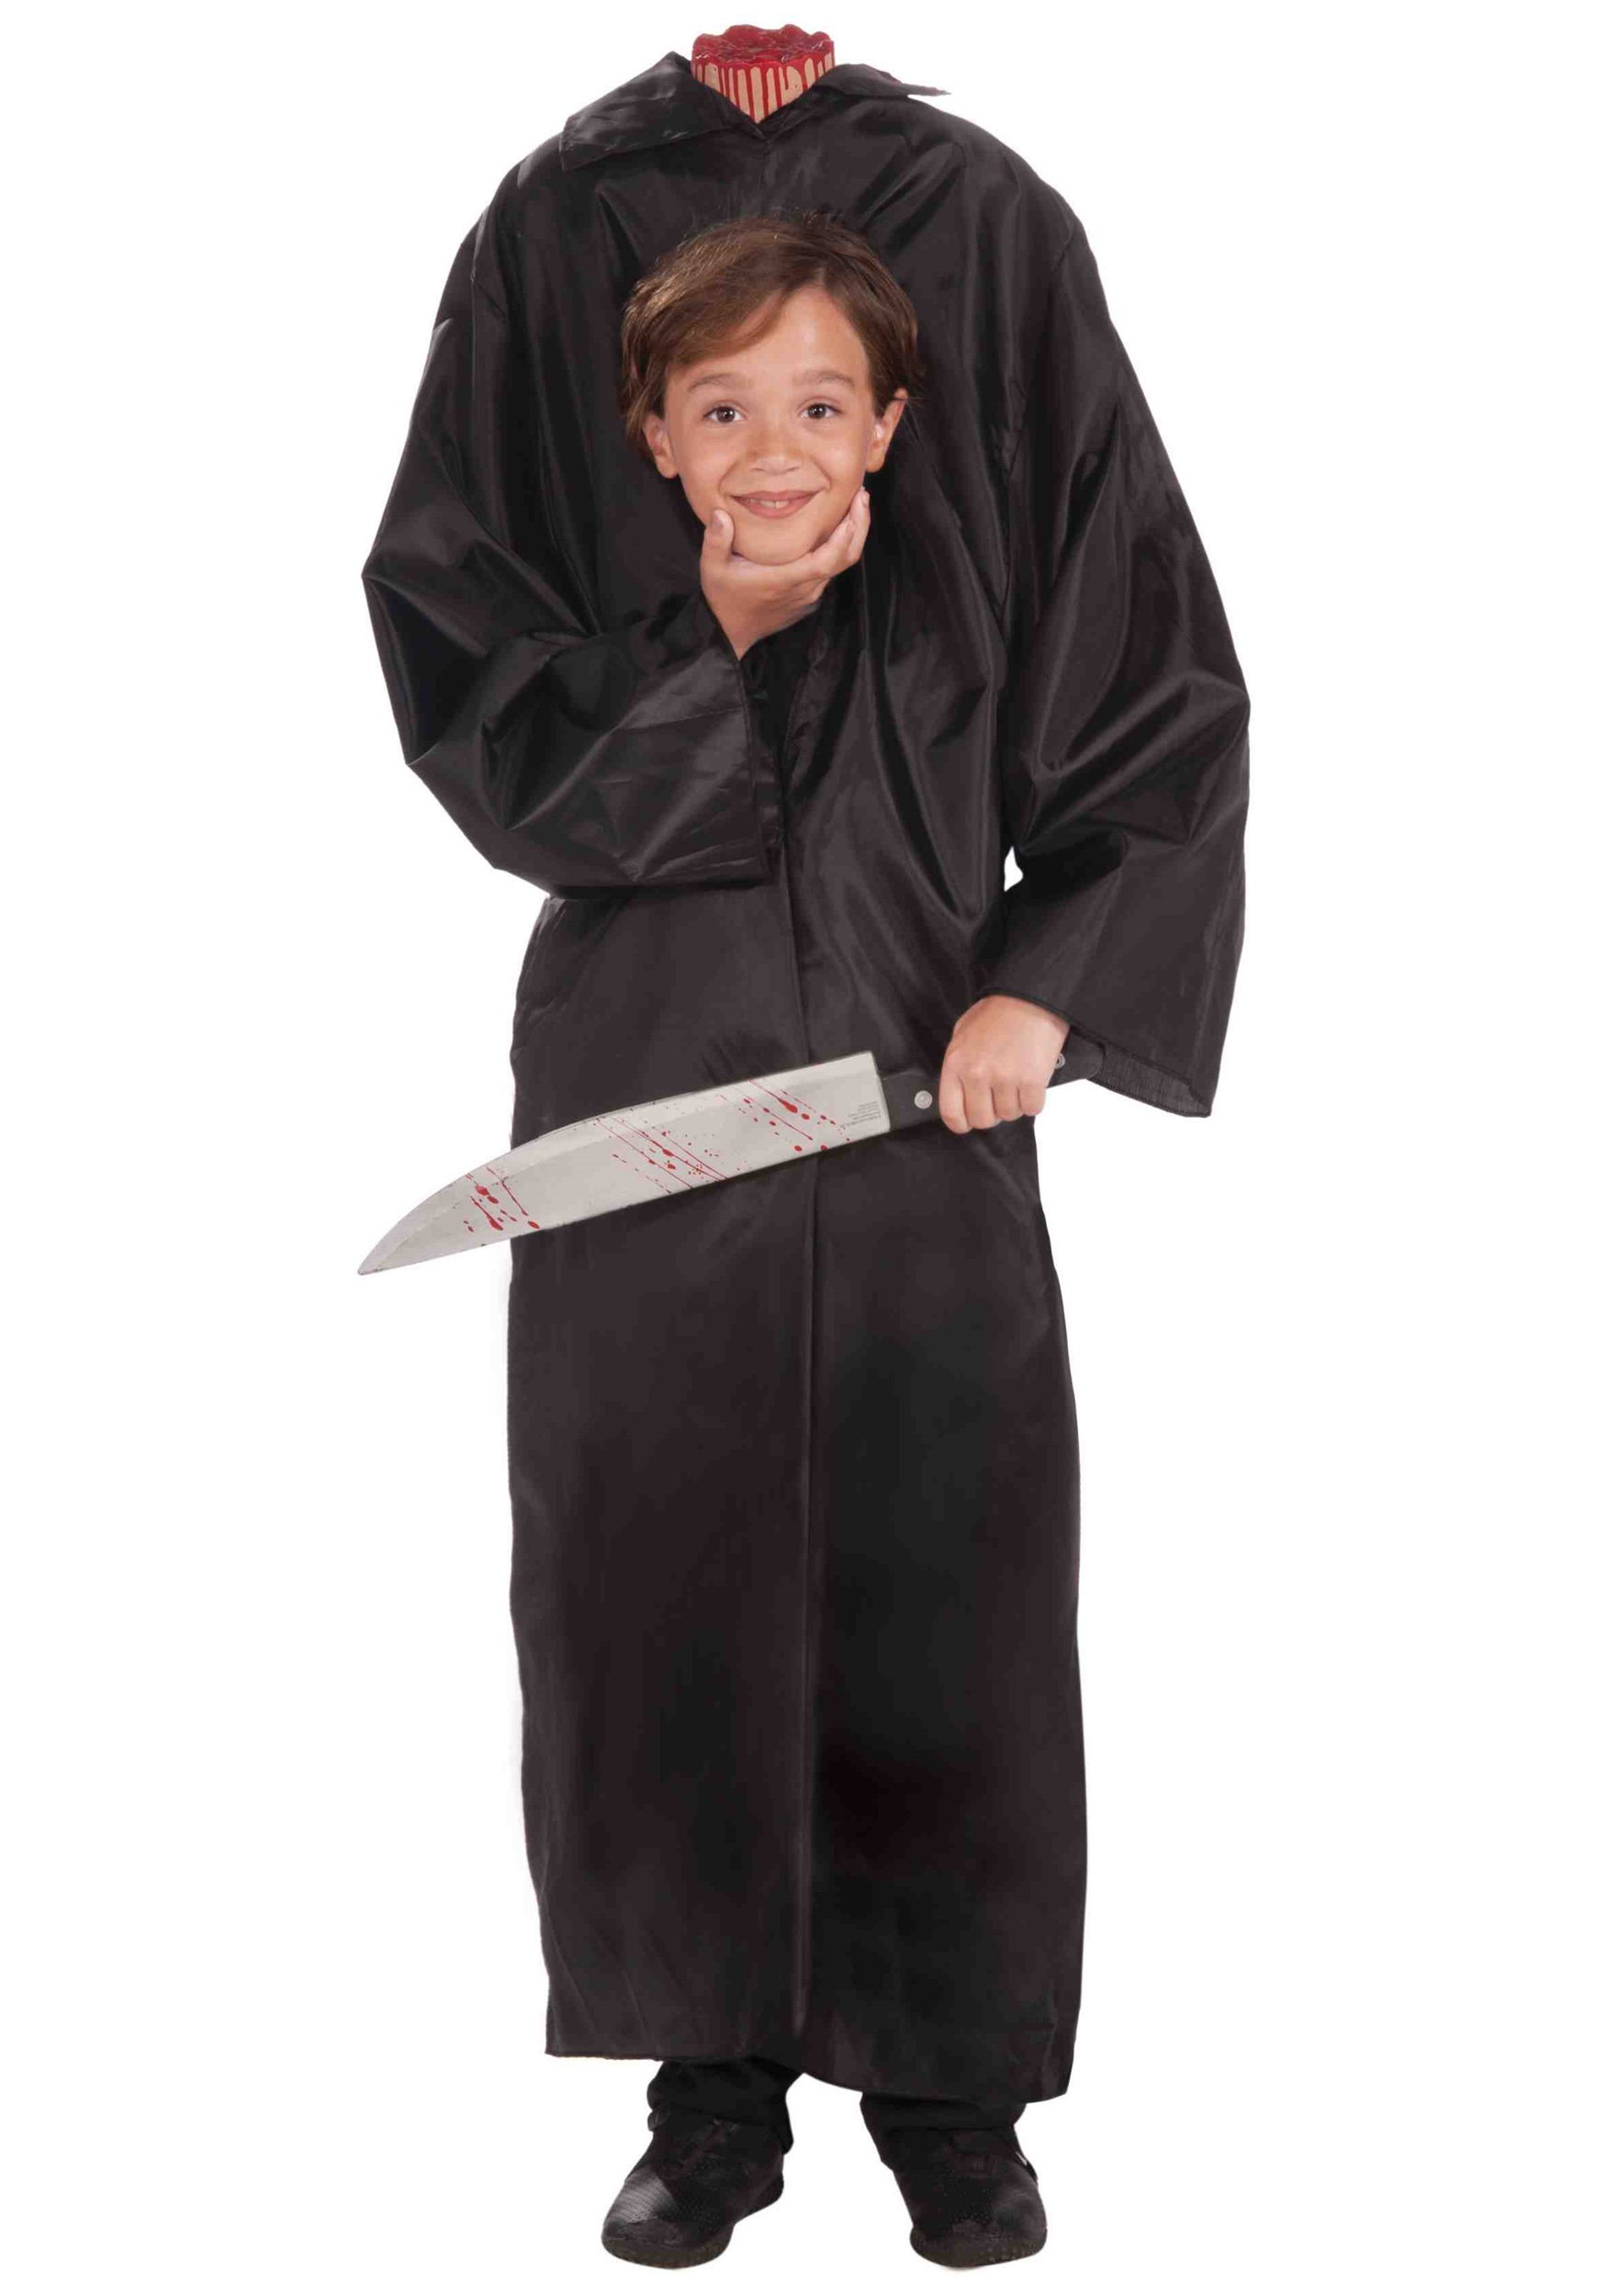 Kids Halloween Costumes Pictures Halloween Costume Child